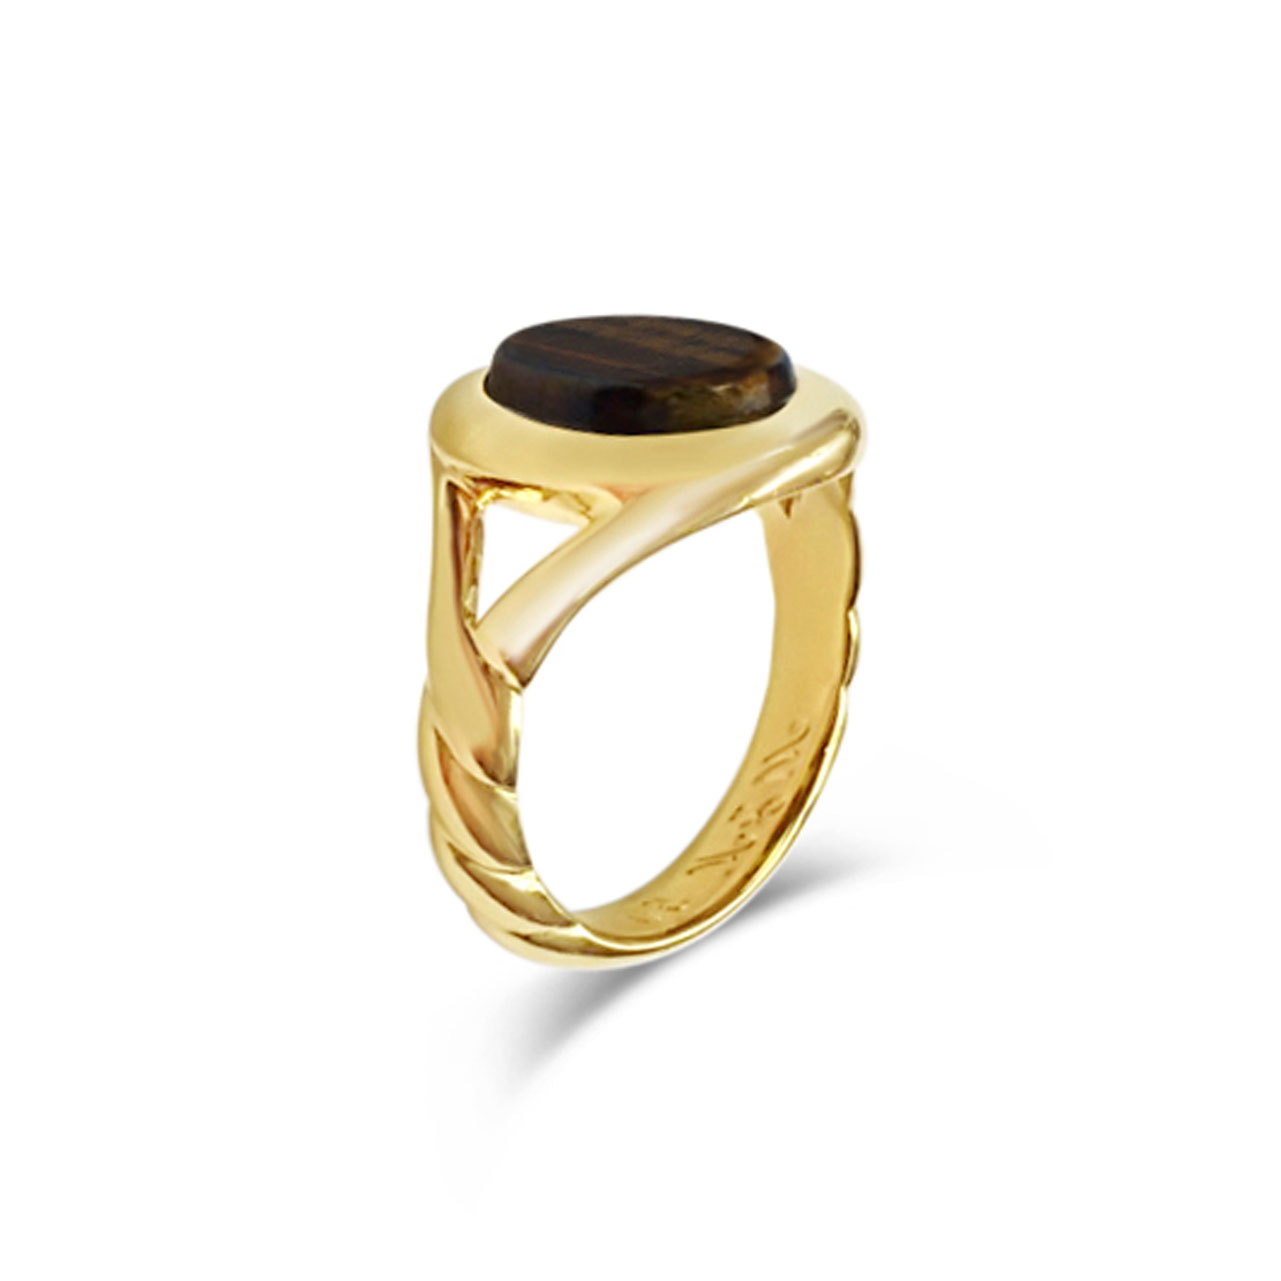 Tiger's eye and yellow gold signet ring side